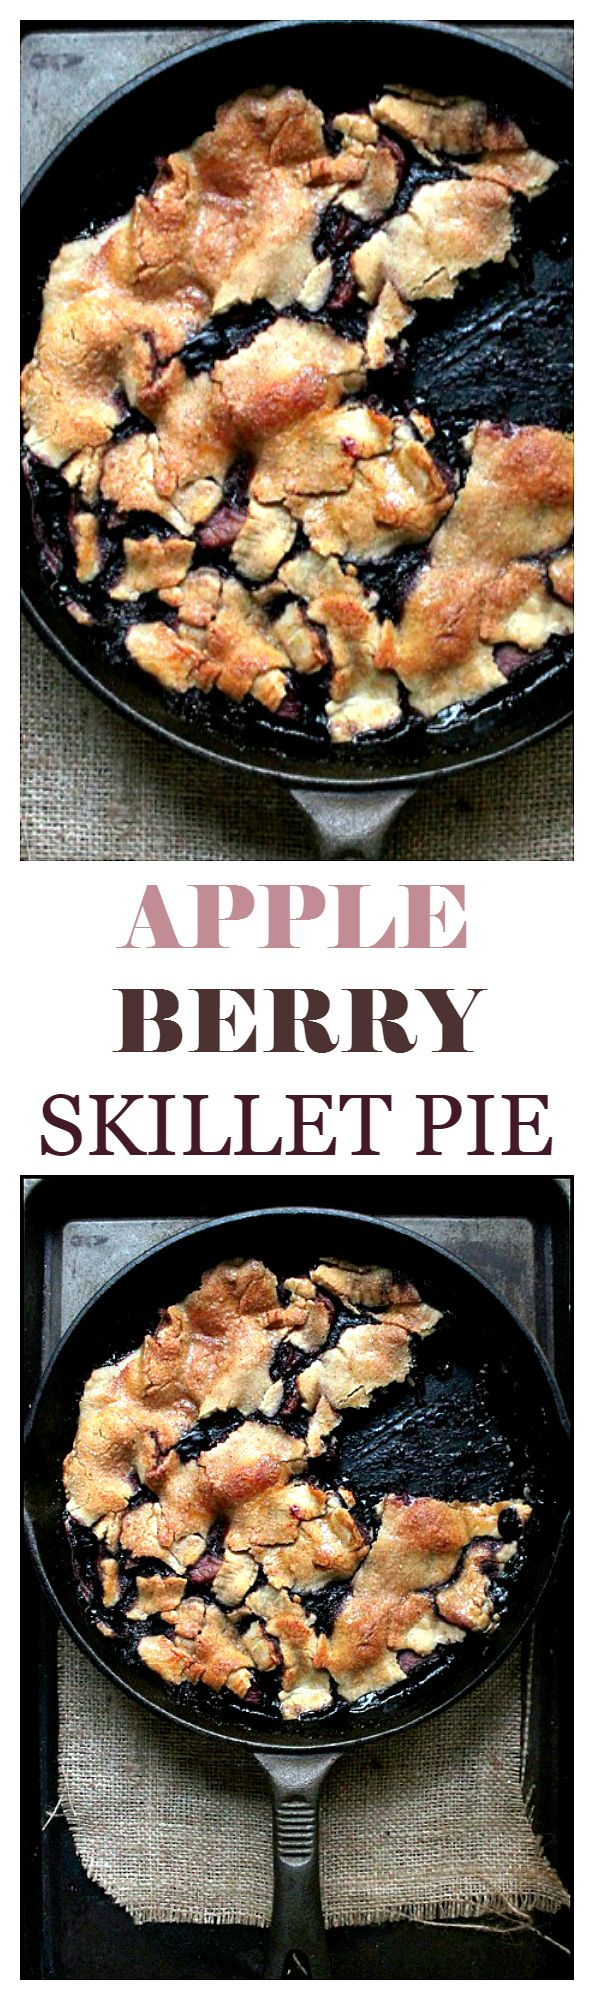 Apple Berry Skillet Pie - It's a pie, in a skillet! Super simple, insanely delicious!